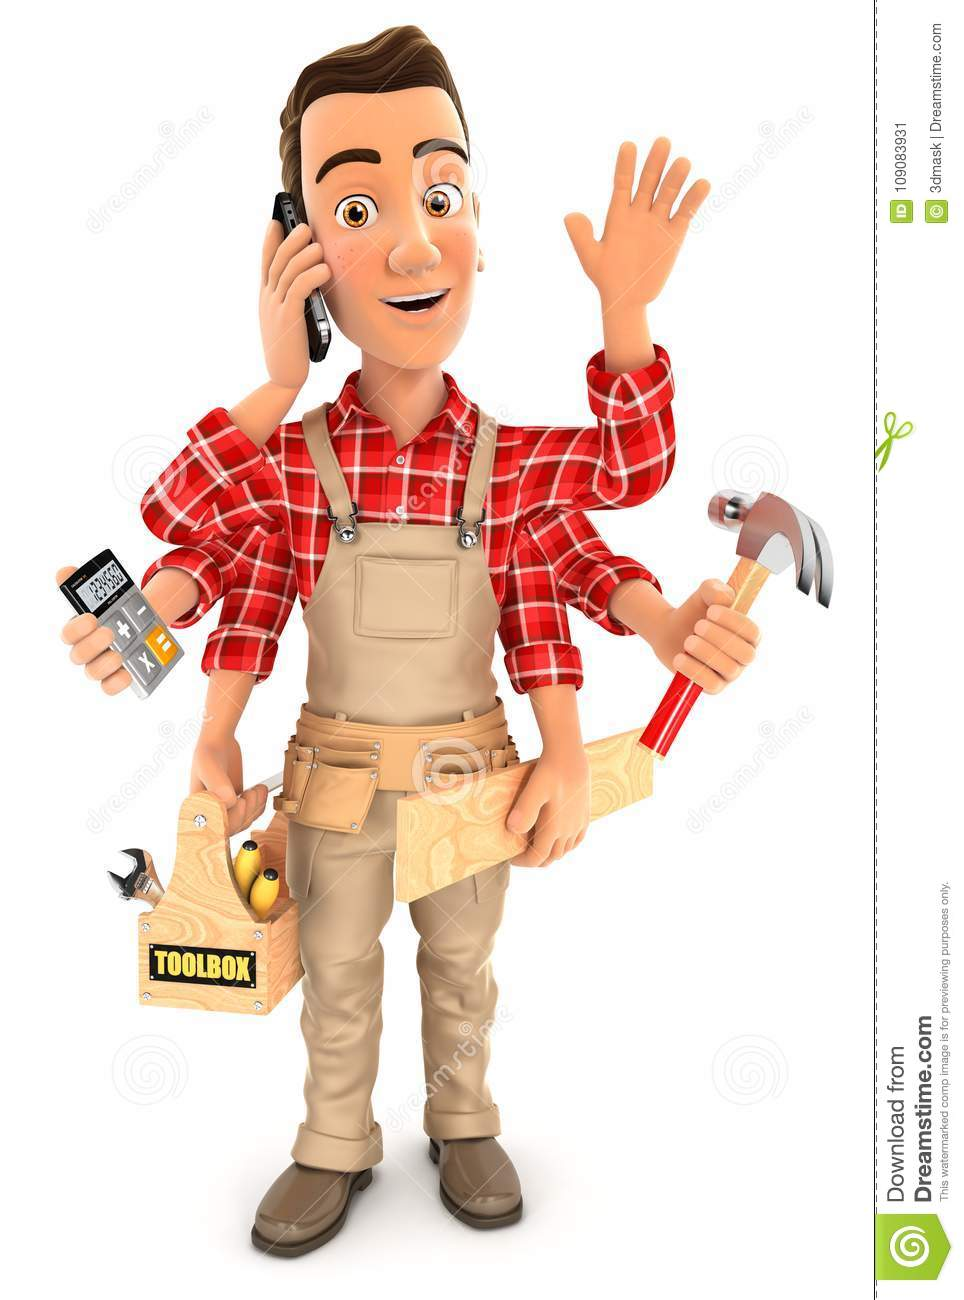 3d handyman with six arms multitasking concept